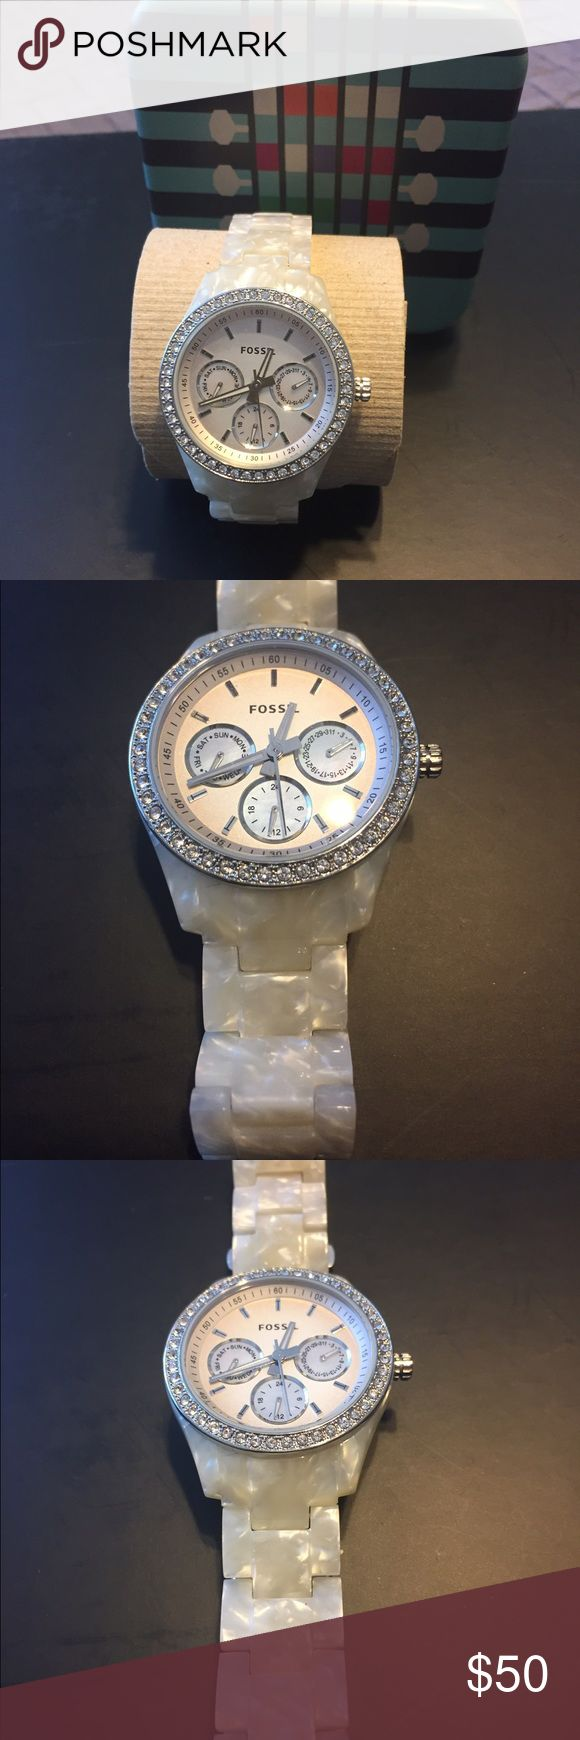 Fossil boyfriend watch Beautiful boyfriend fossil watch. The band looks like mother of pearl (I'm not certain if it is) and there is a patent number. This watch has only been worn a couple times. It is in excellent condition only needs a new battery. Comes with original box. Fossil Accessories Watches